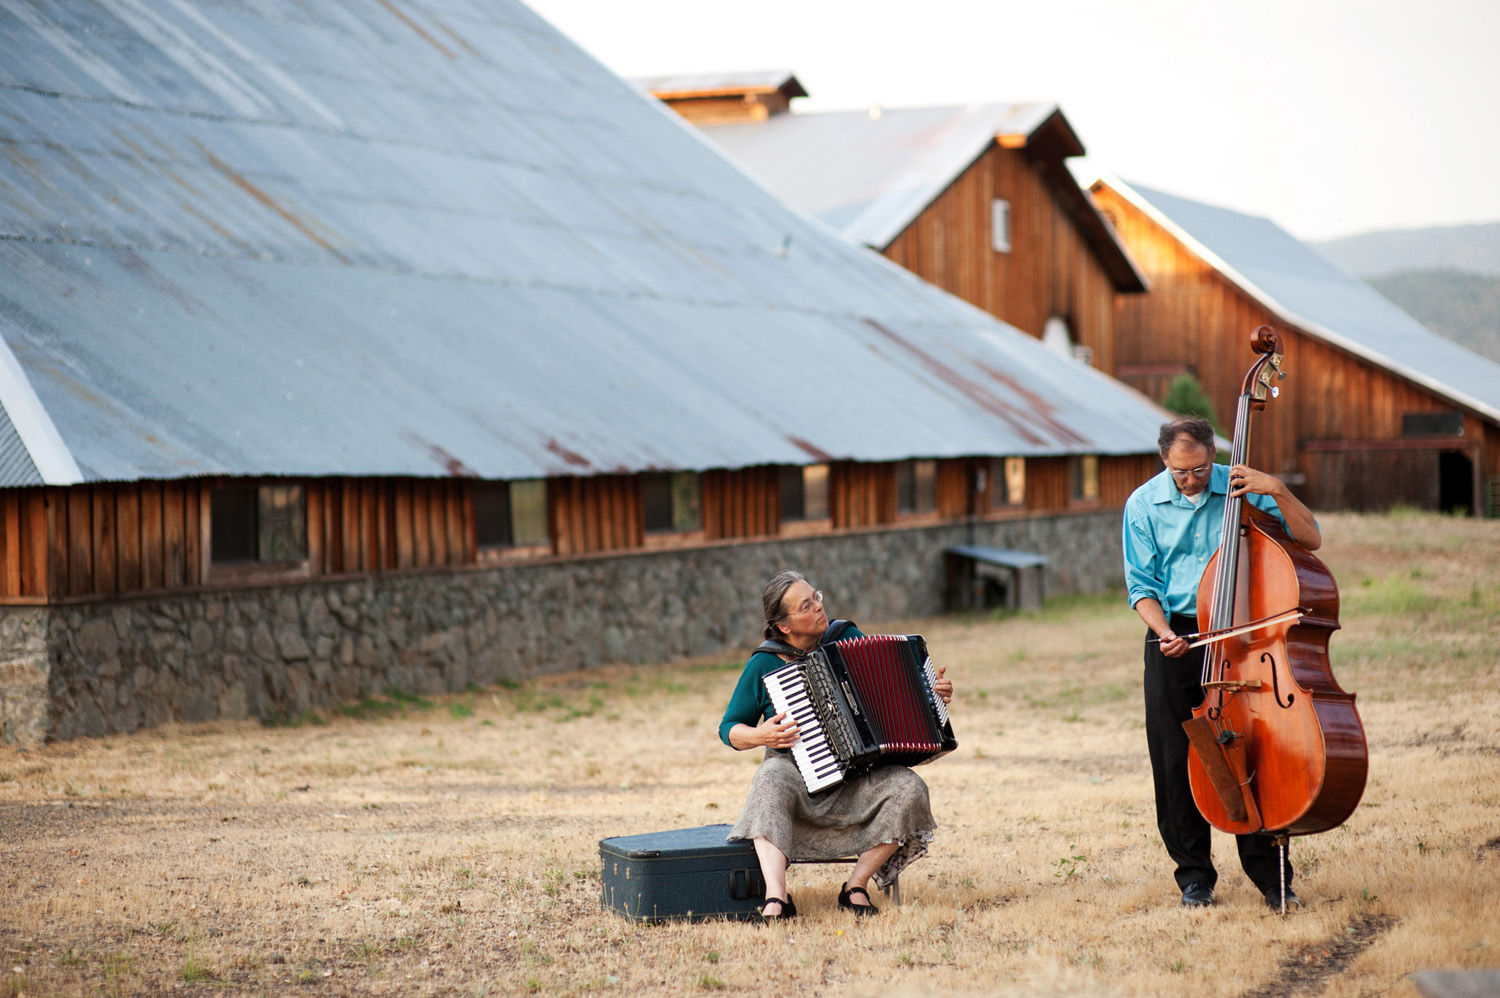 klezmer wedding ceremony musicians sitting in a field in front of a barn in rustic setting